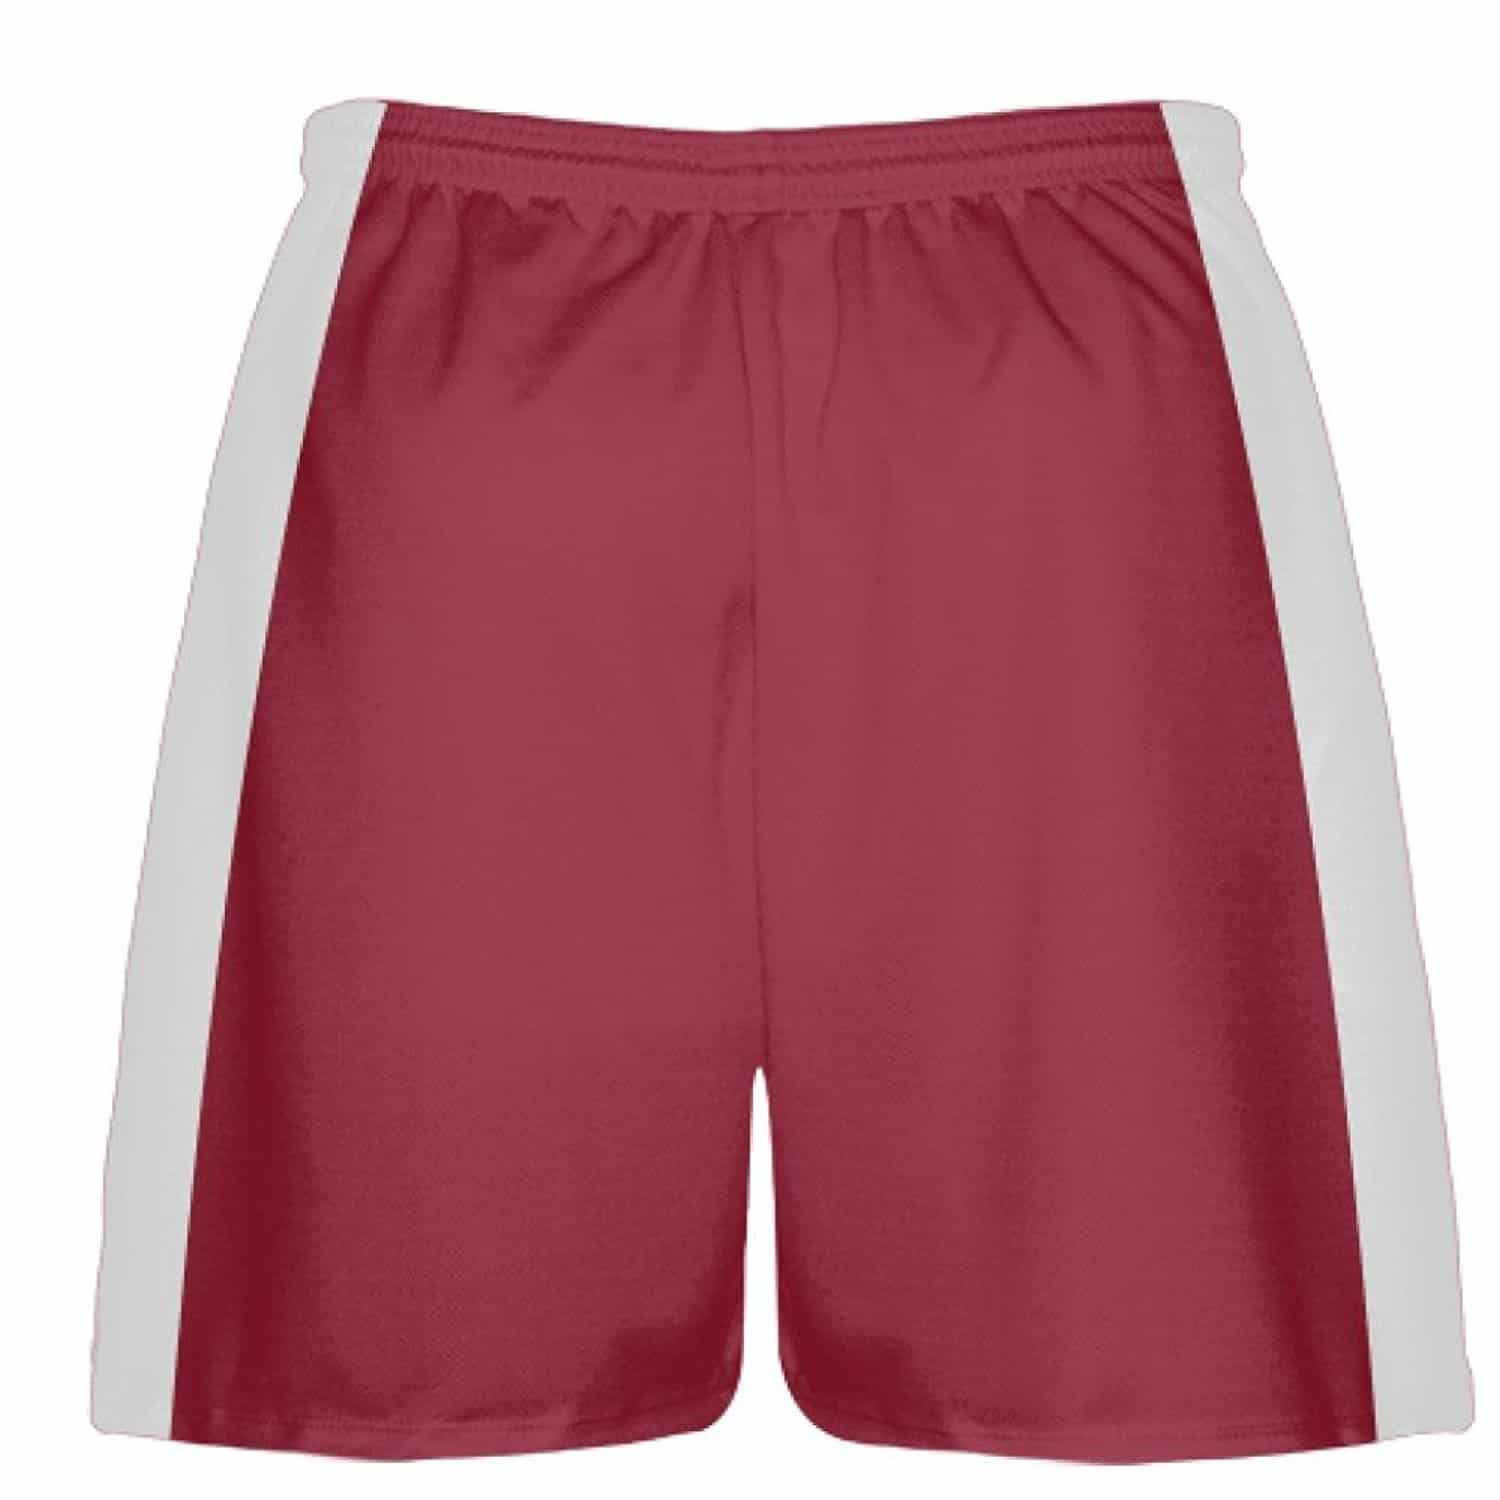 LightningWear-Cardinal-Red-Lacrosse-Short-Sublimated-Shorts-For-Lacrosse-Boys-Athletic-Shorts-B078NGC11Y-2